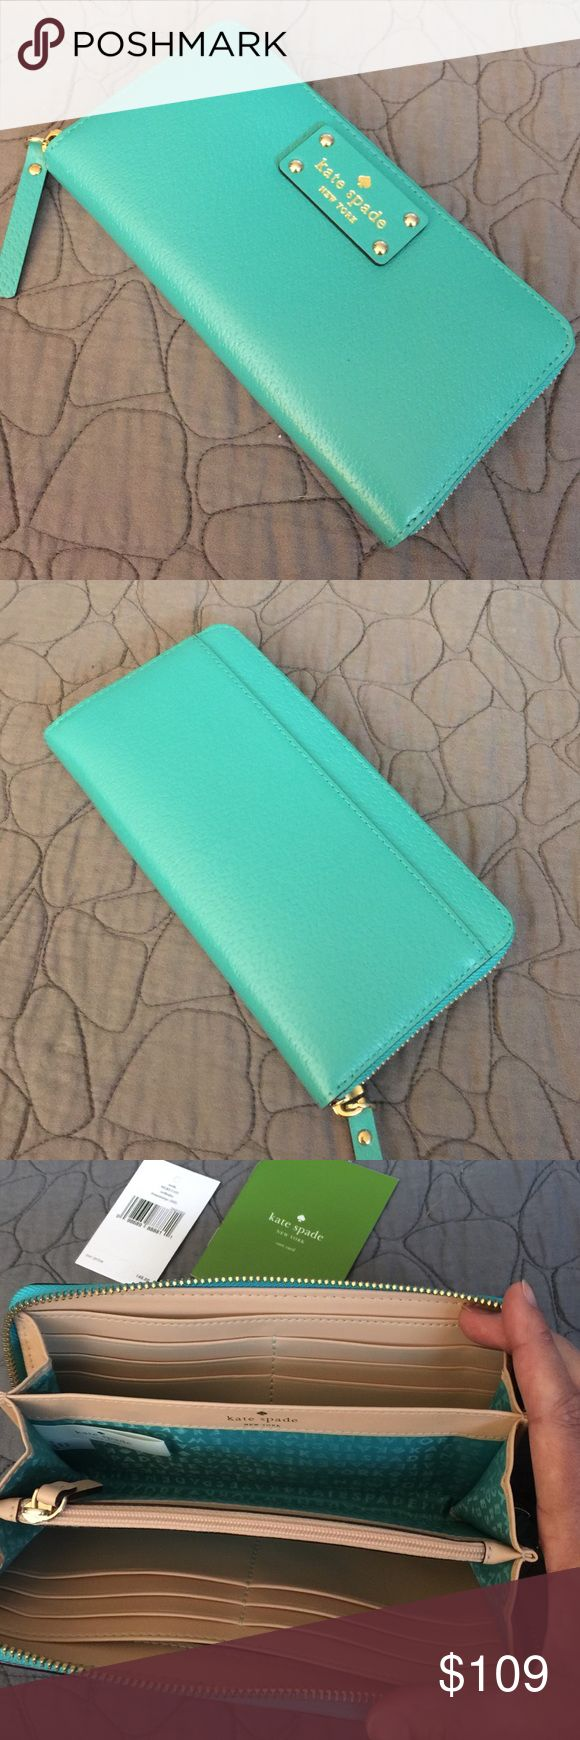 Kate Spade Turquoise Nada Wellesley Wallet Brand new kate spade Nada Wellesley zipper wallet in a stunning turquoise blue leather. This wallet has tons of room and lots of credit card slots on pockets. kate spade Bags Wallets